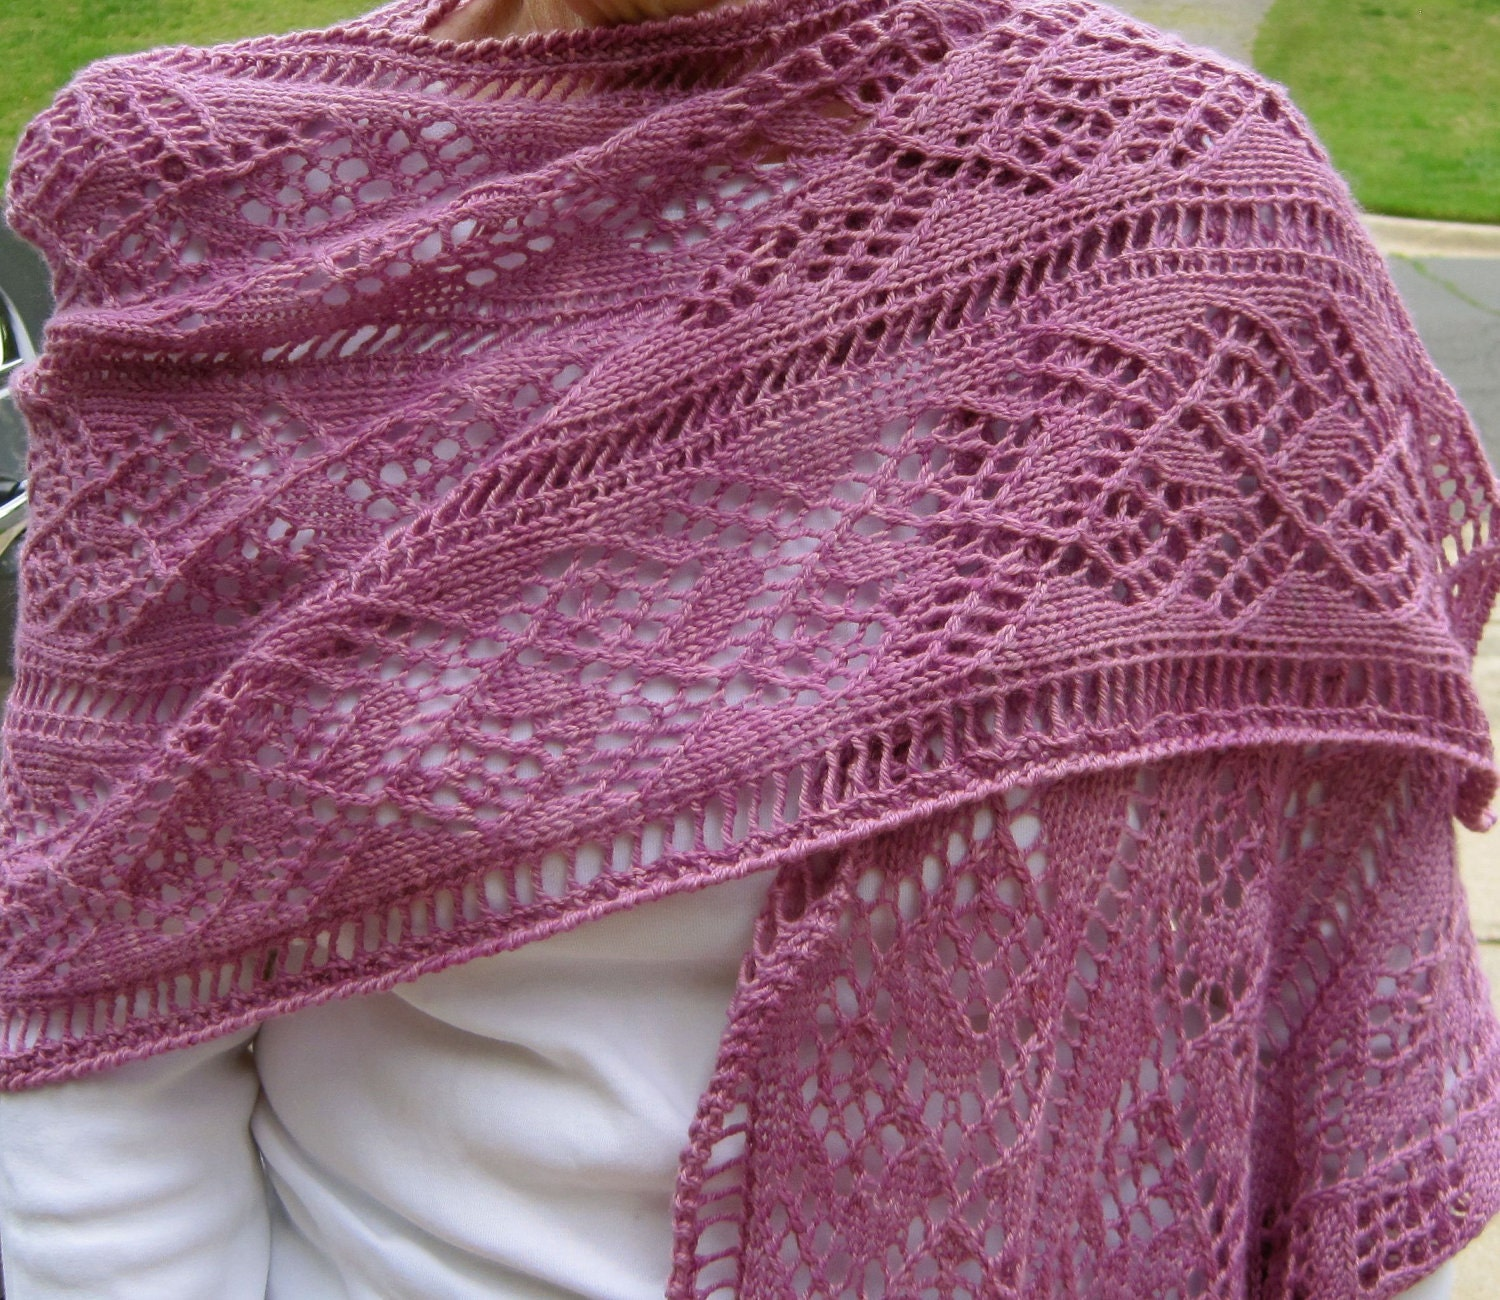 Knitting Patterns For Lace Shawls : Knit Wrap Pattern: Ladder and Lace Light Wrap Knitting